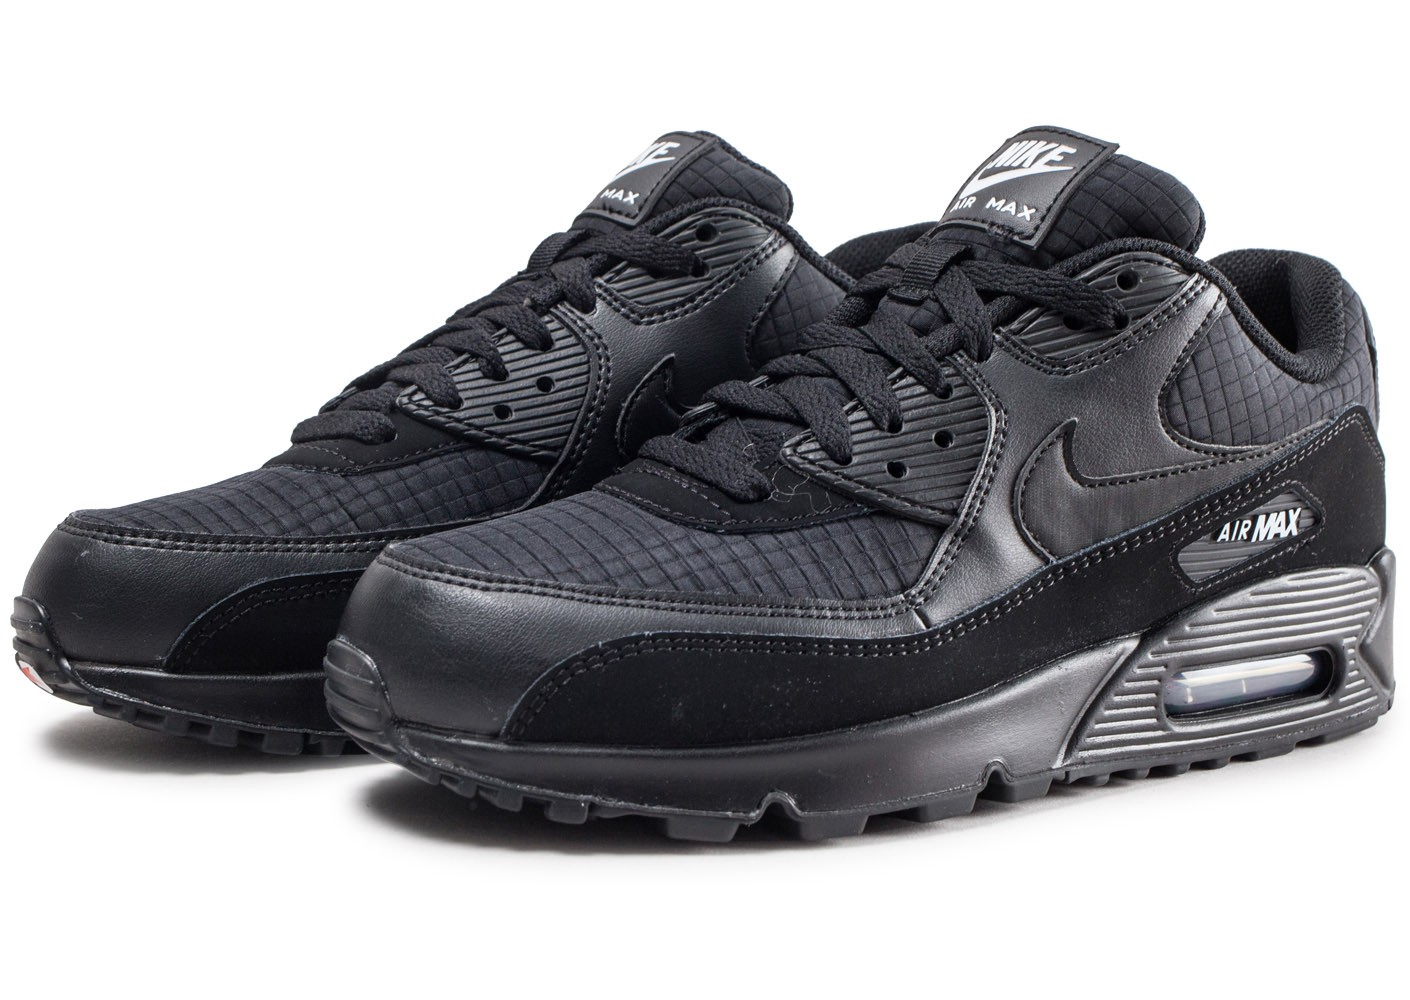 competitive price 966f5 865be Nike Air Max 90 Essential noire - Chaussures Baskets homme - Chausport